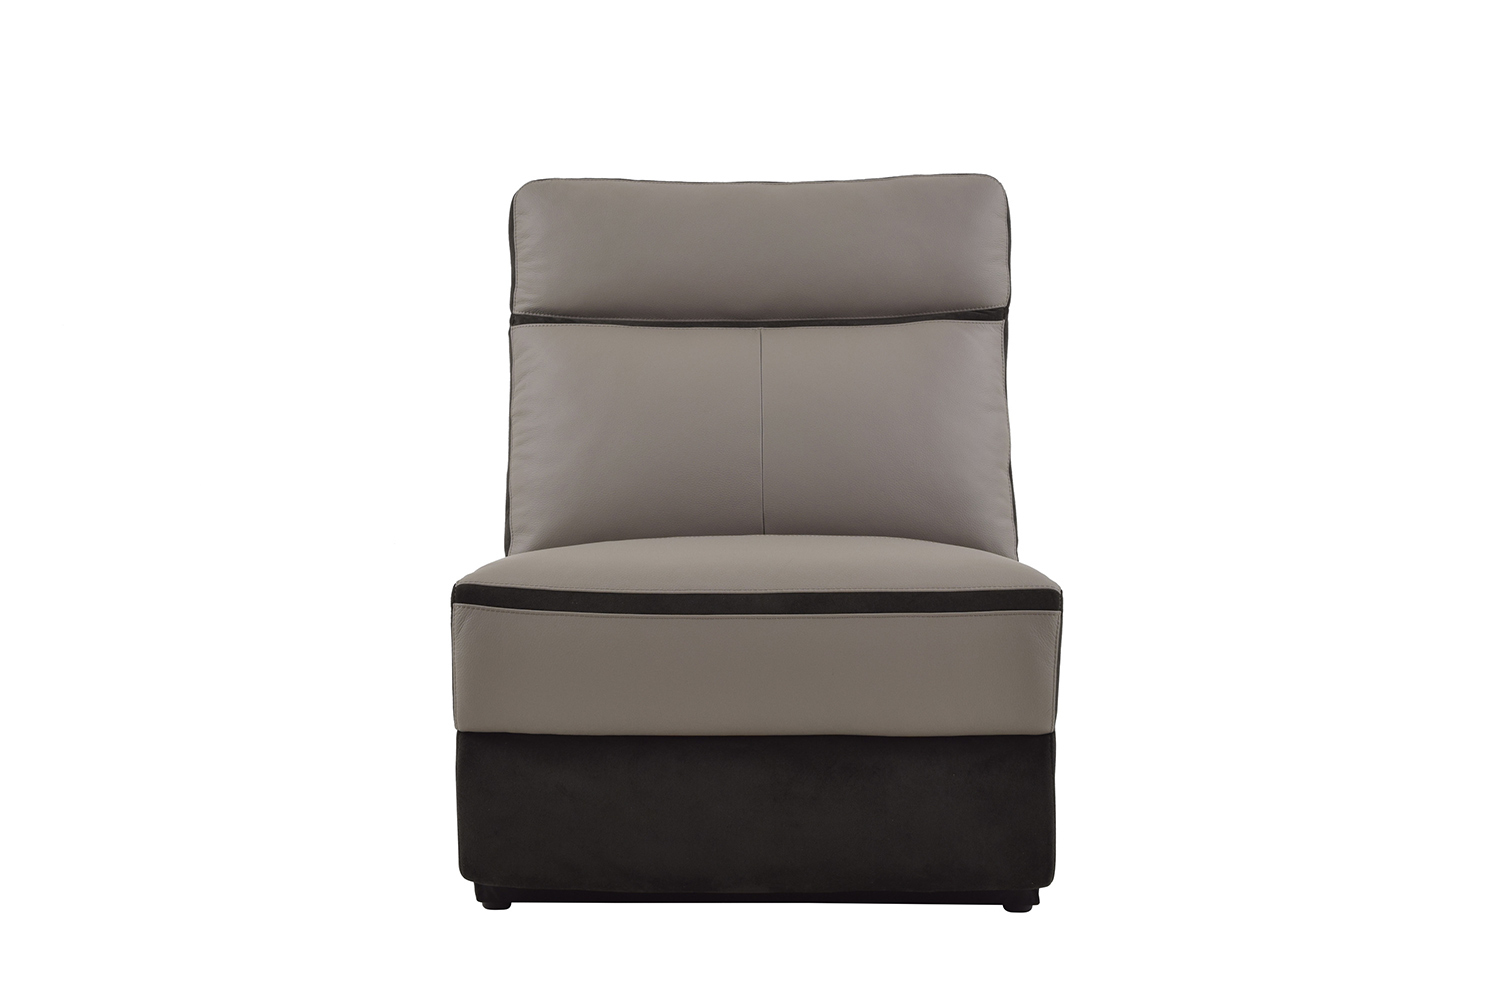 Homelegance Laertes Power Armless Reclining Chair - Taupe Grey Top Grain Leather/Fabric